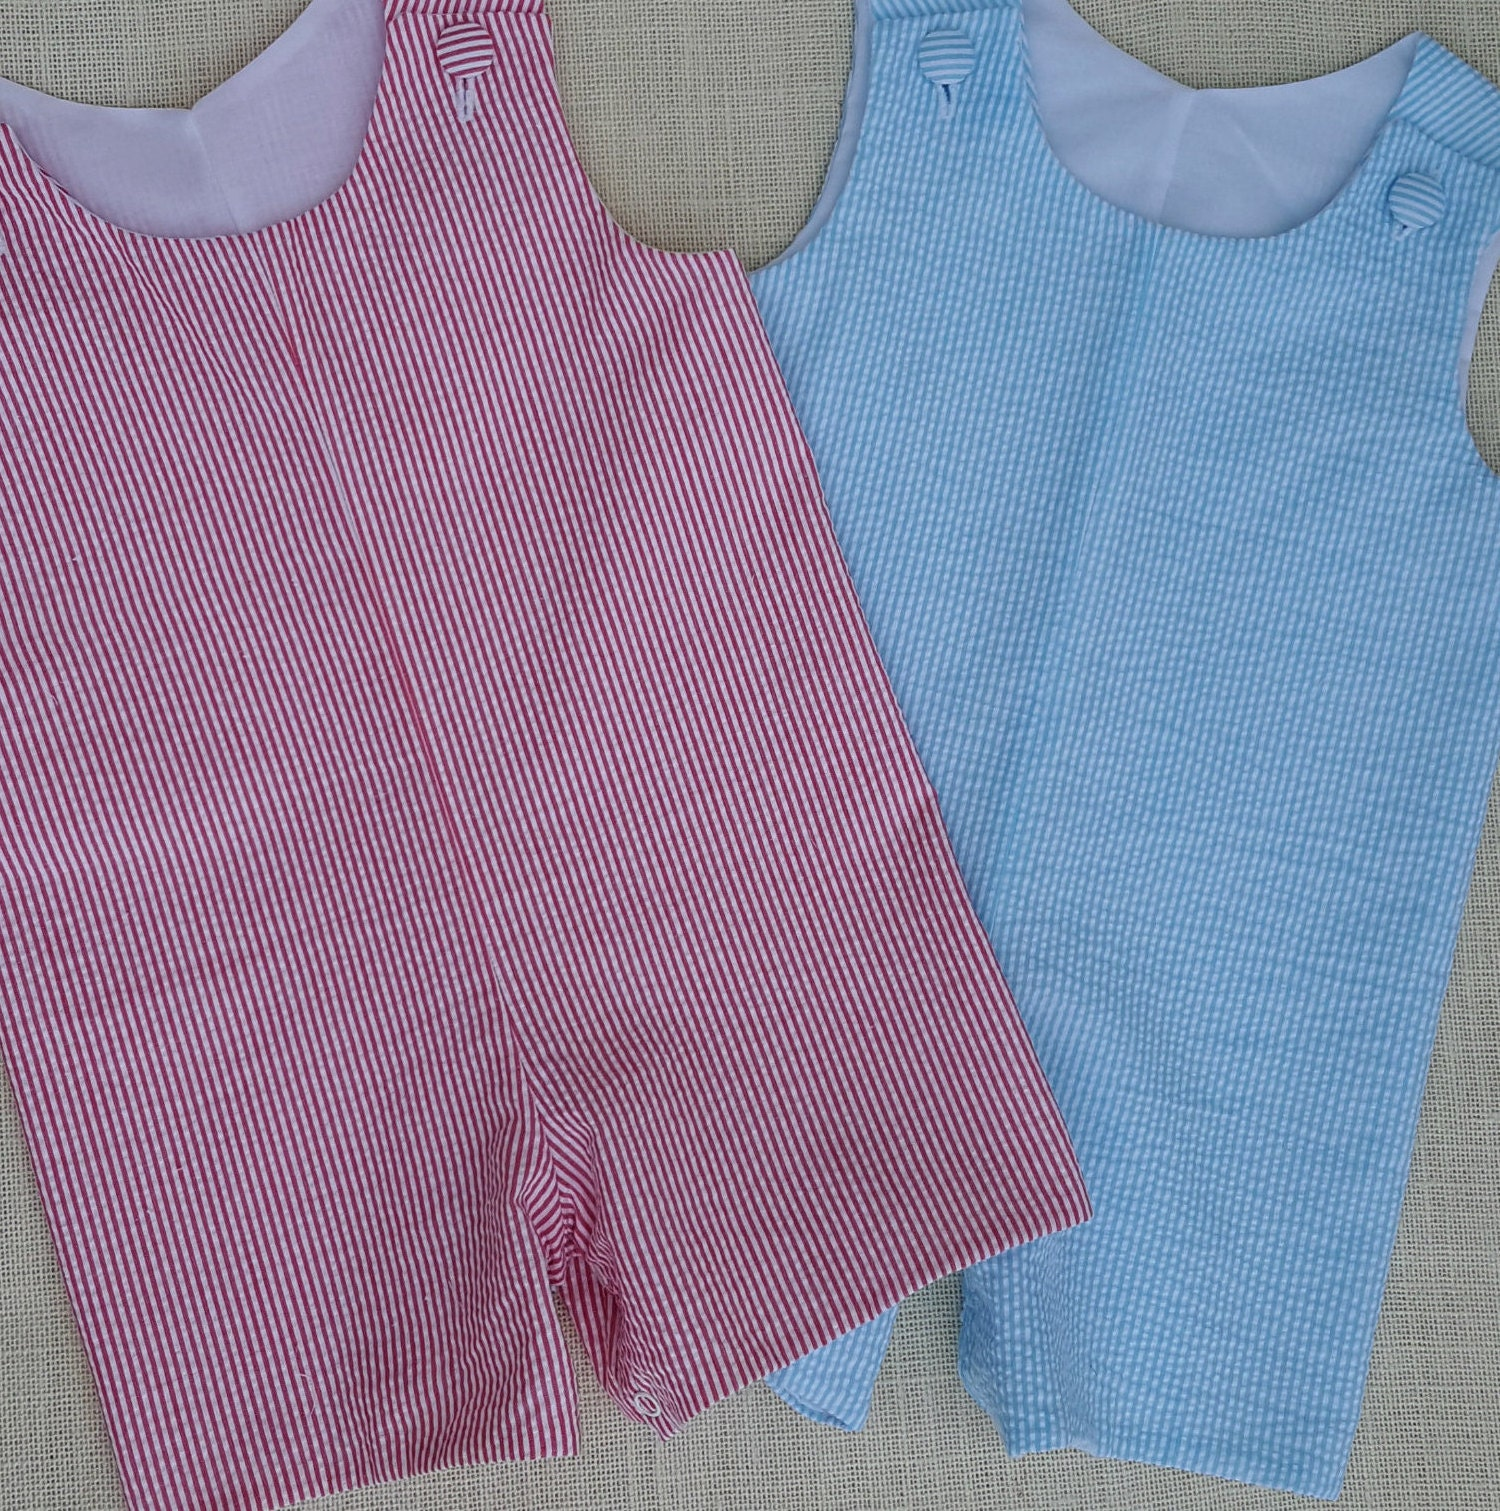 Childrens Blank Shirts For Embroidery Catalyst Psm